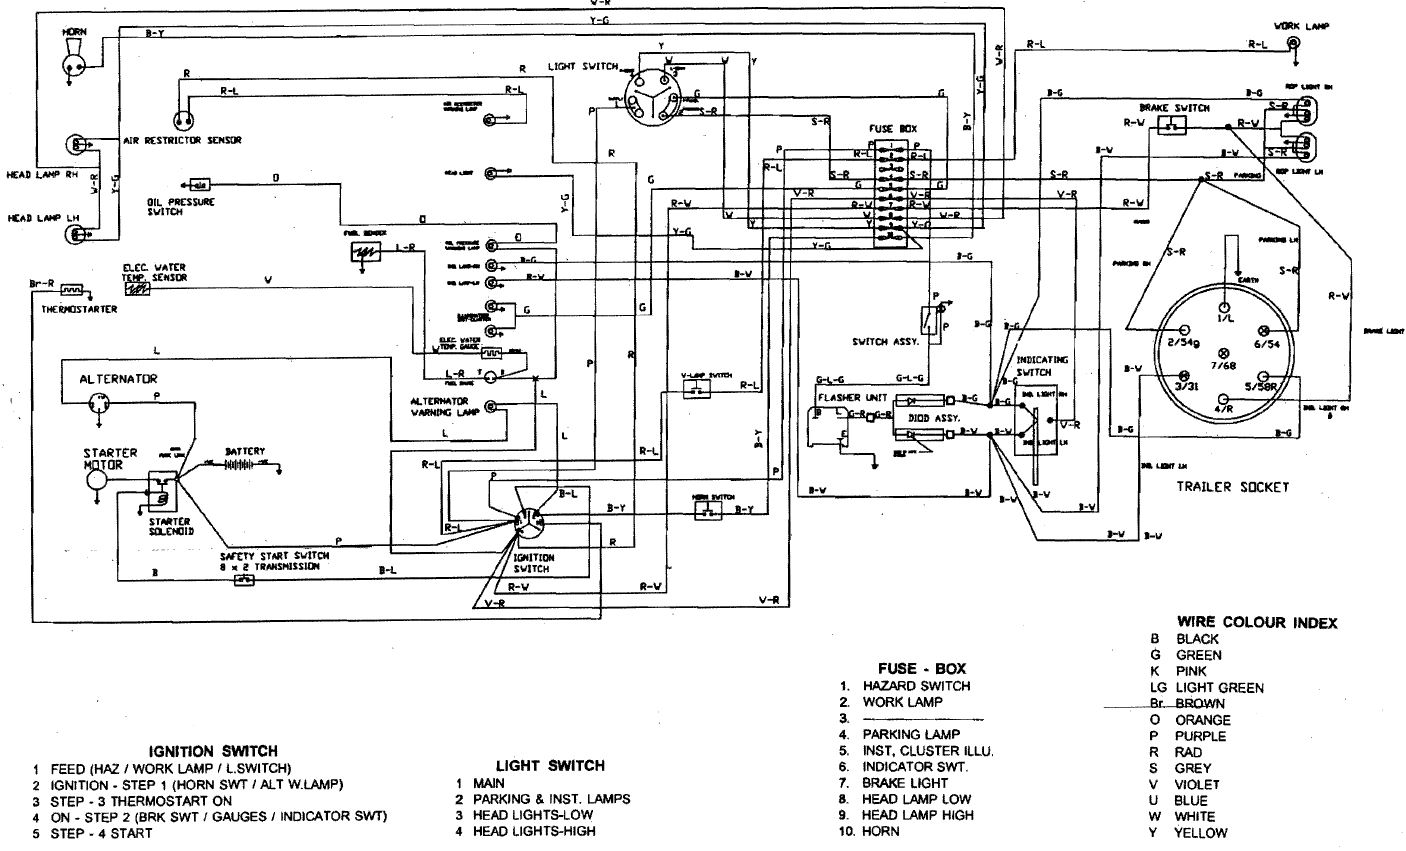 Jd 312 Wiring Diagram Wiring Schematic Diagram